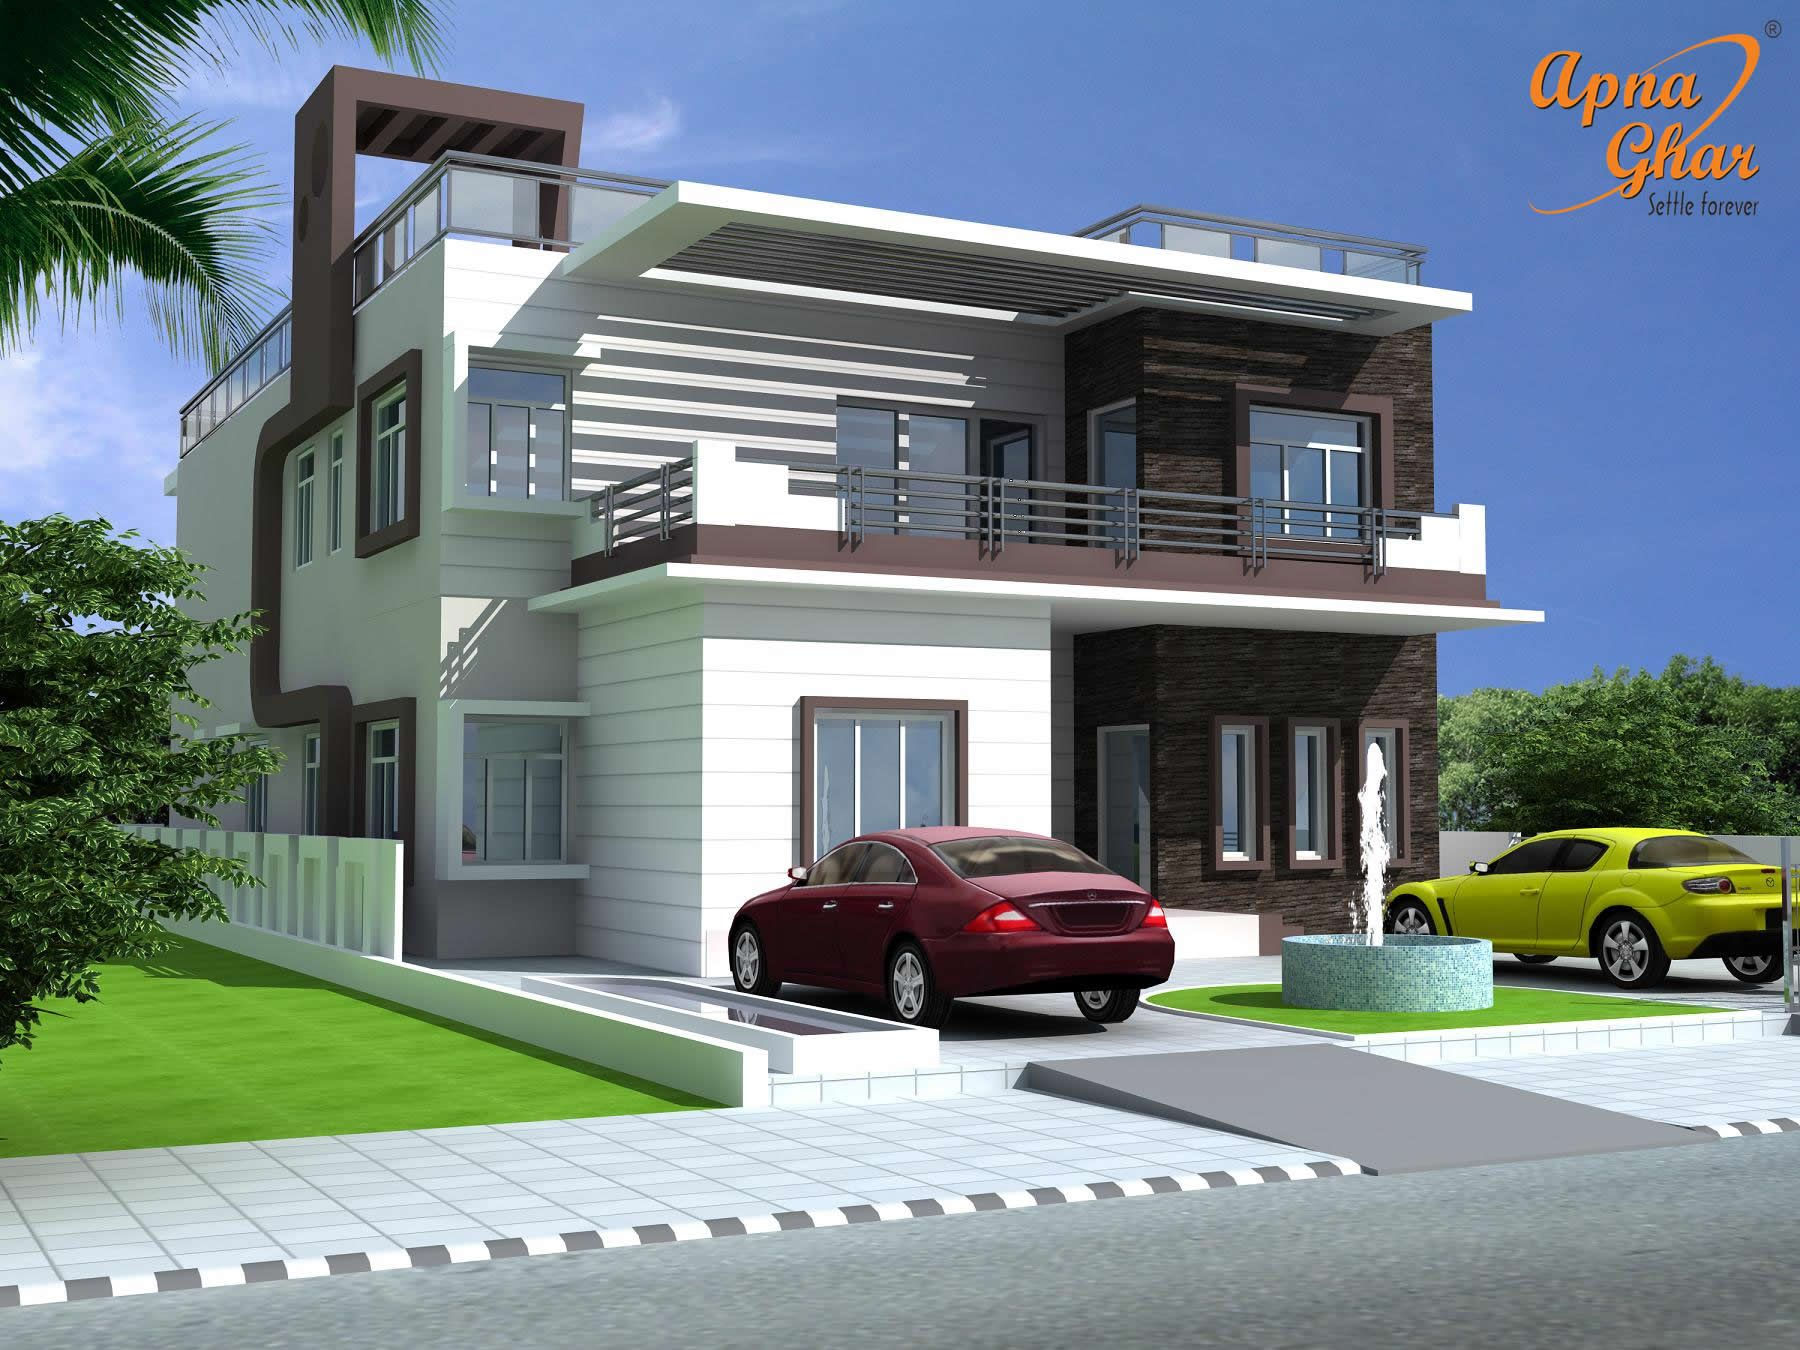 6 bedrooms duplex house design in 390m2 13m x 30m click for Building front design